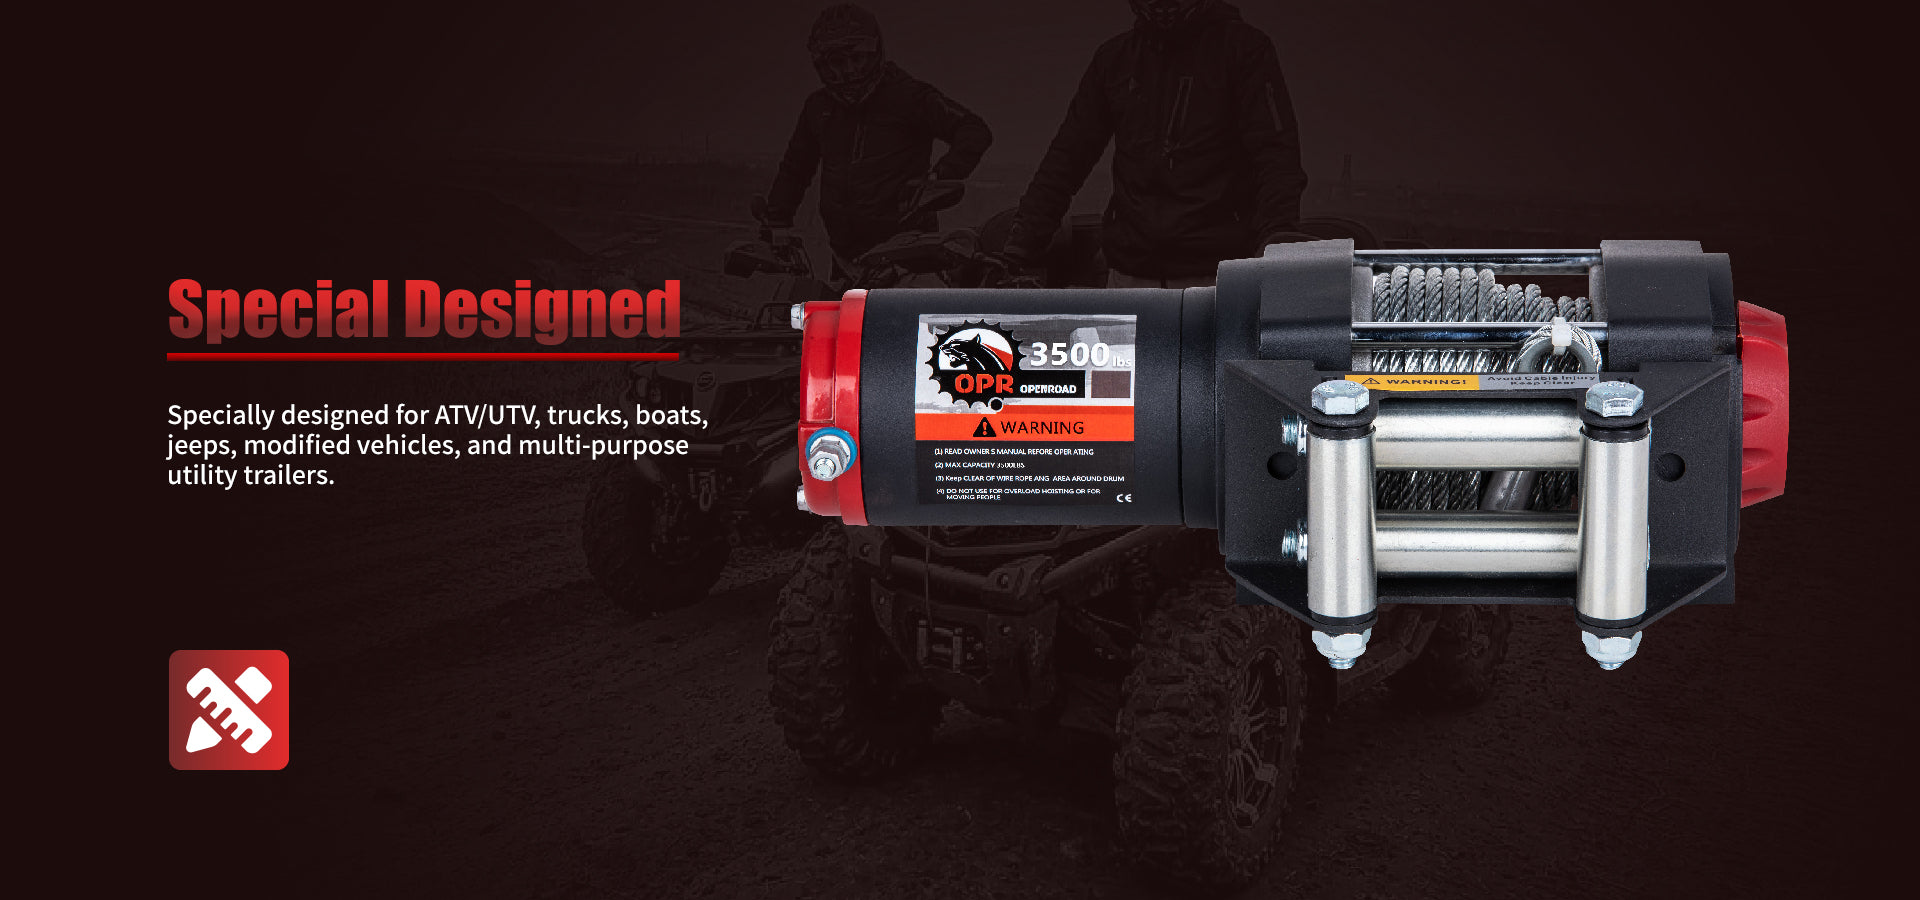 openroad-z-series-3500lb-atv-winch-with-steel-cable